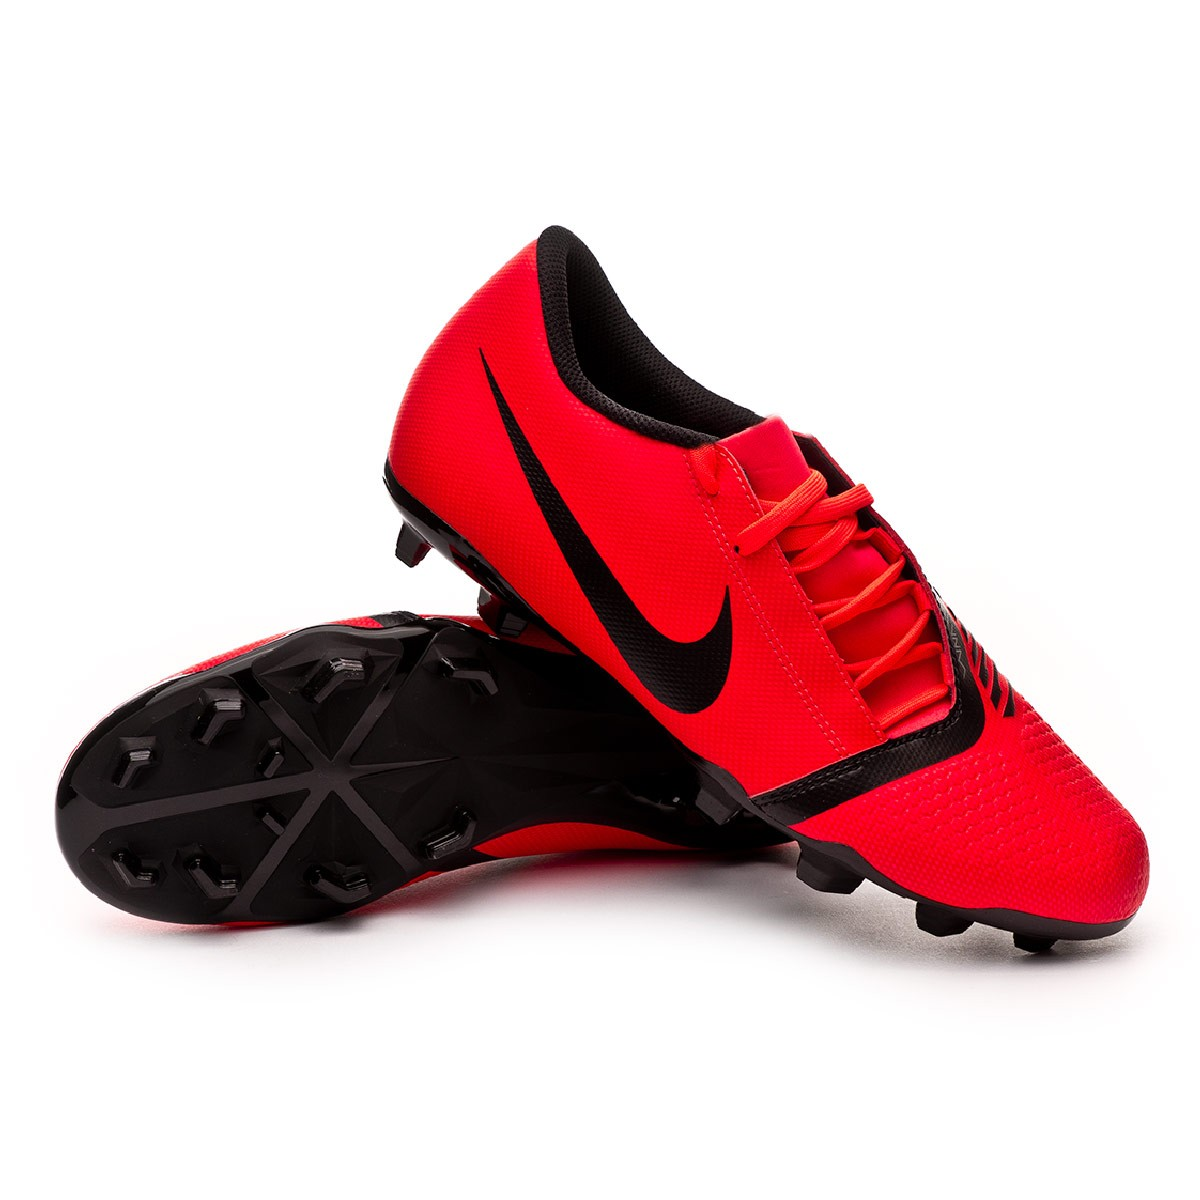 bosque Duquesa estrés  Football Boots Nike Phantom Venom Club FG Bright crimson-Black - Football  store Fútbol Emotion